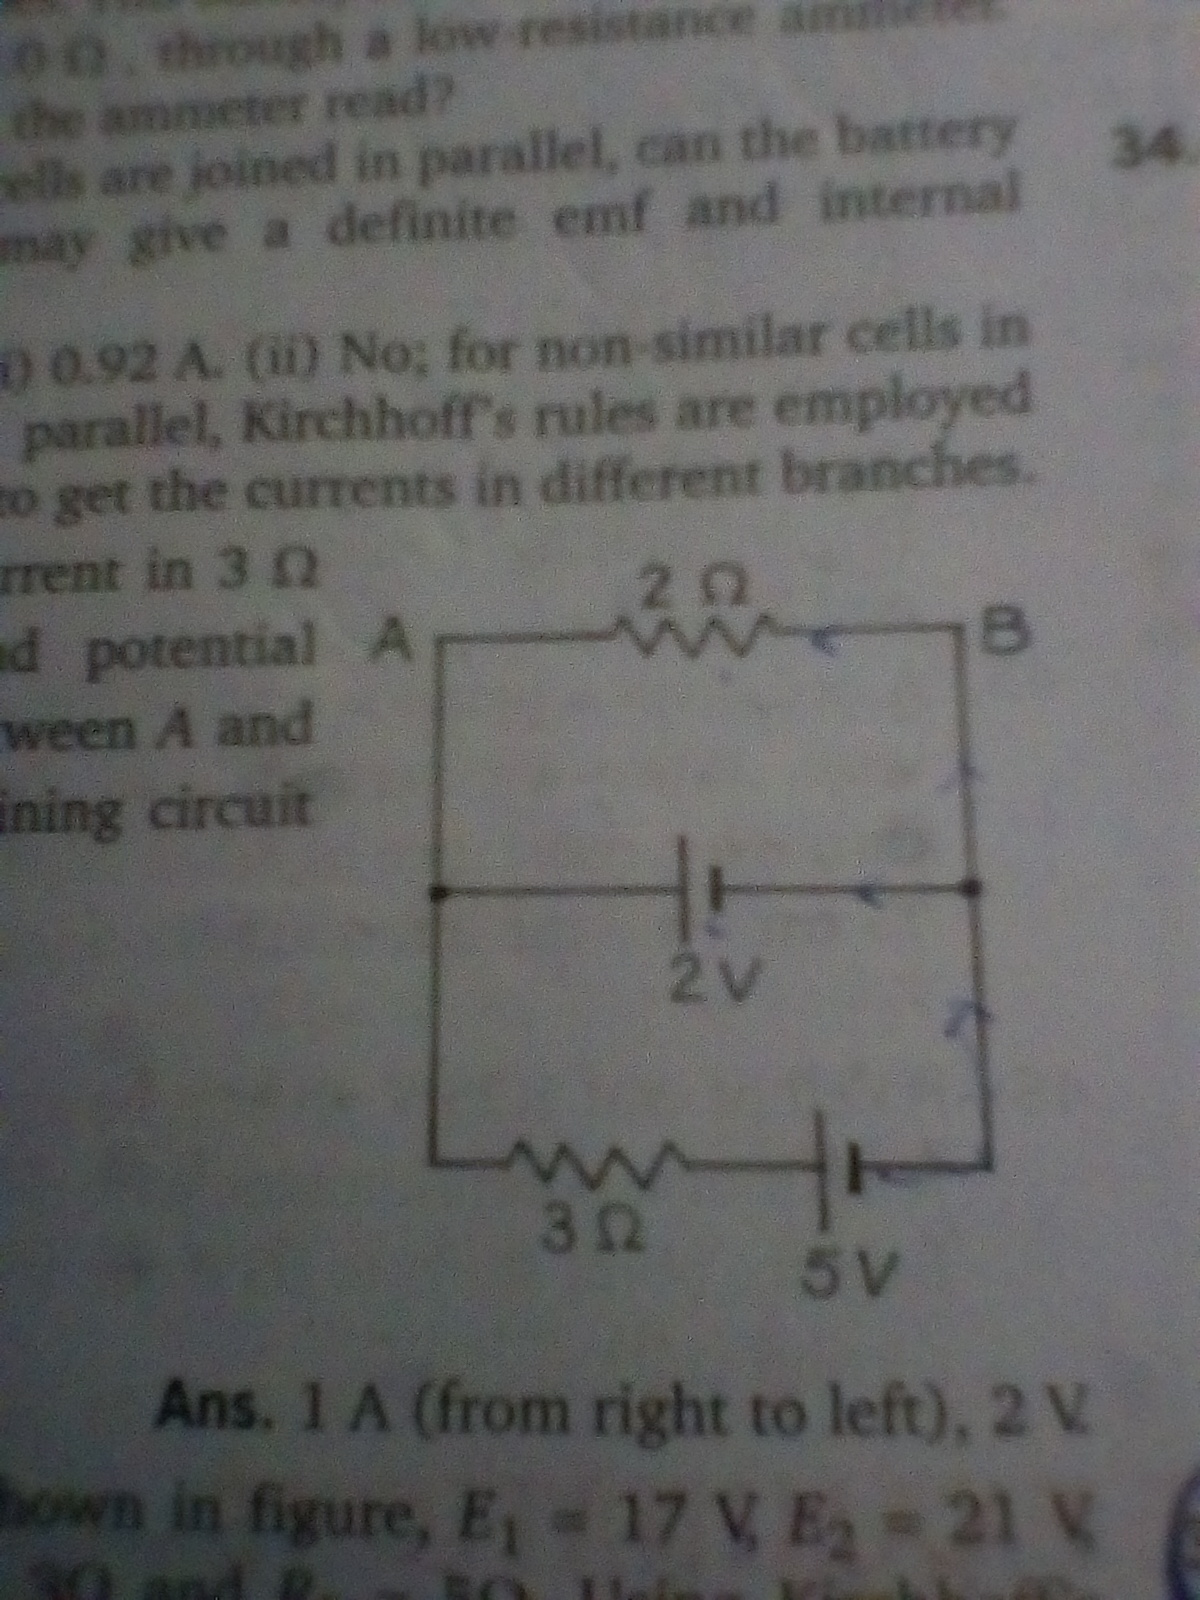 Determine Current In 3 Ohm Resistor And Potential Difference Across Differences A Battery Each Circuit B